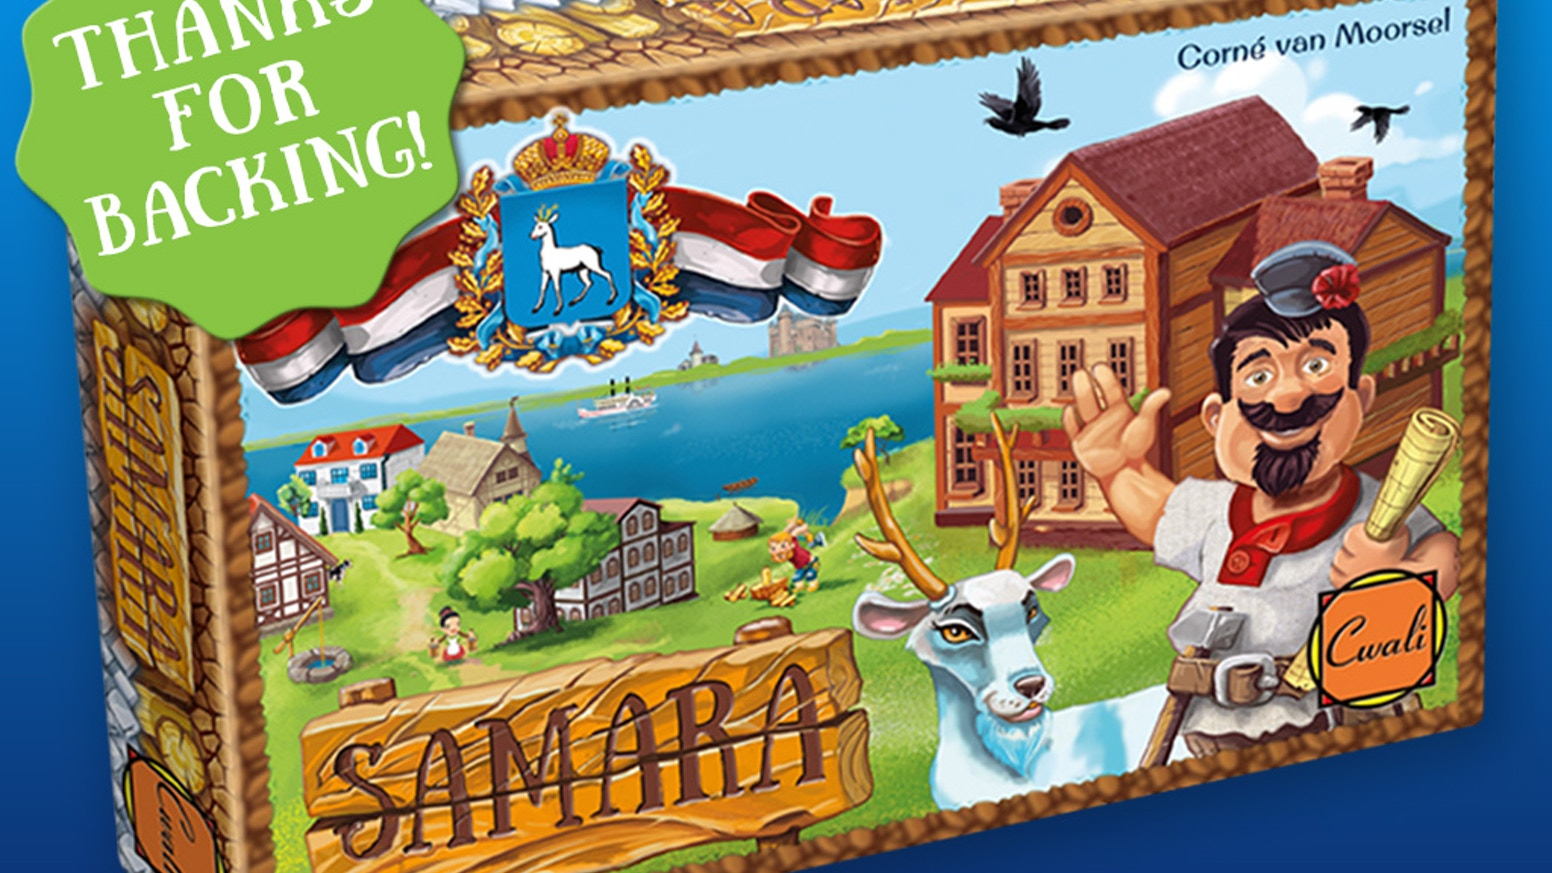 SAMARA sold out. Click below link for the newest game crowdfund.